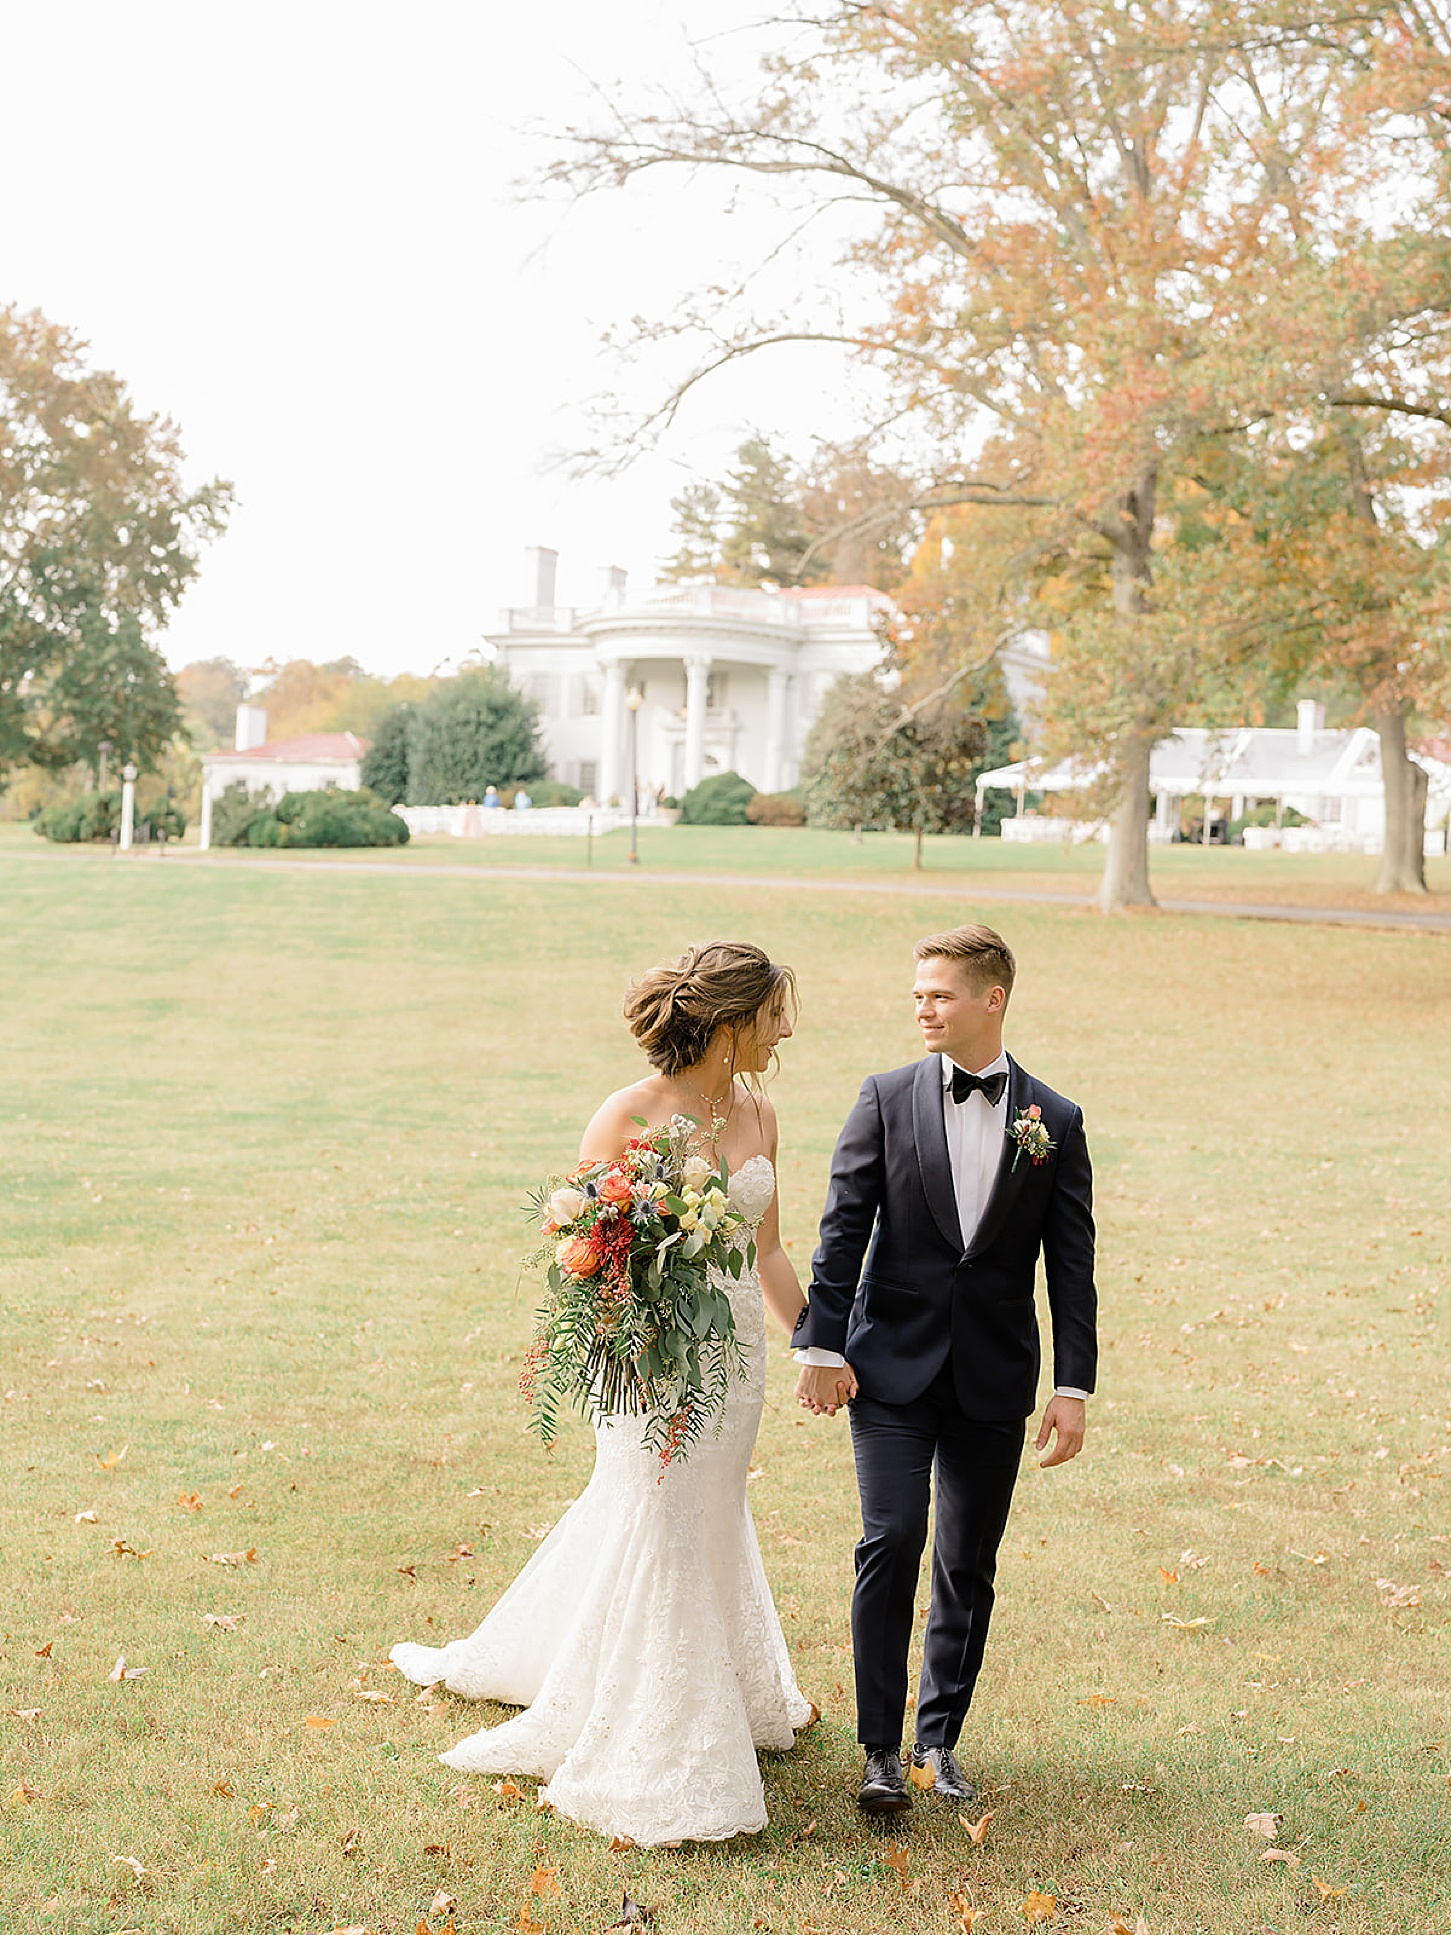 Tennessee Destination Wedding Photography by Magdalena Studios 0029